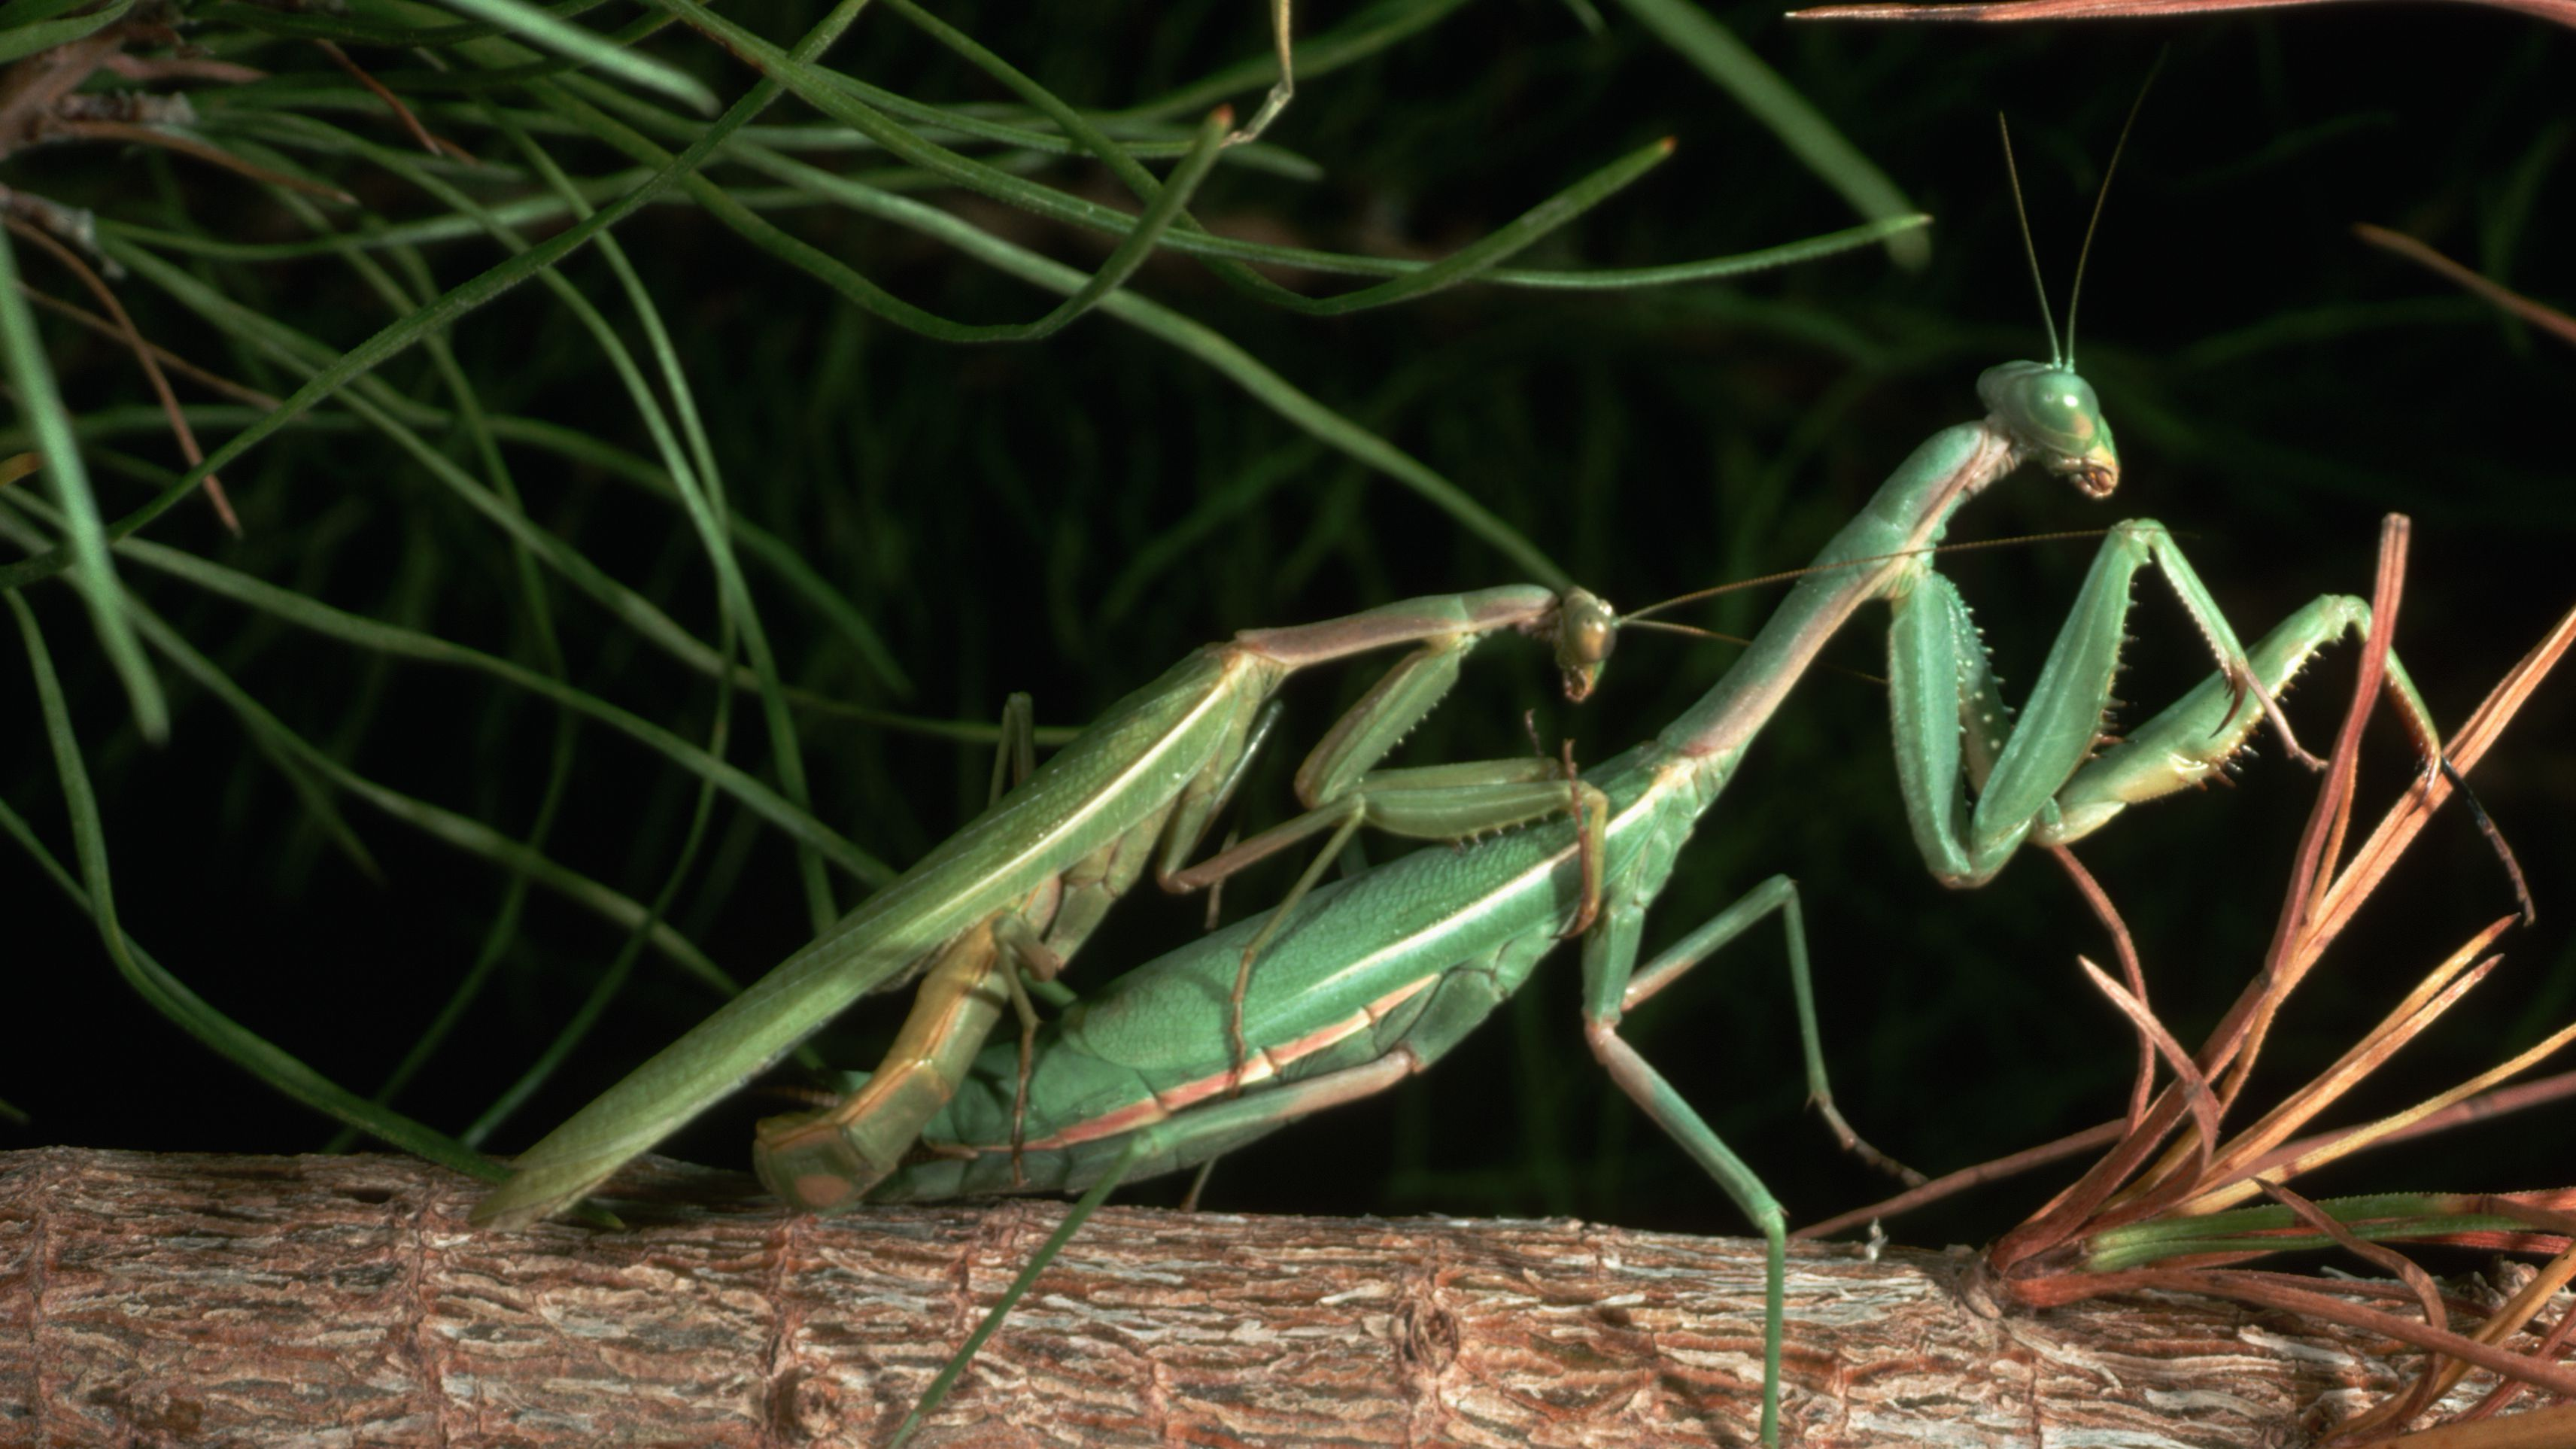 Praying Mantis Mating and Cannibalism